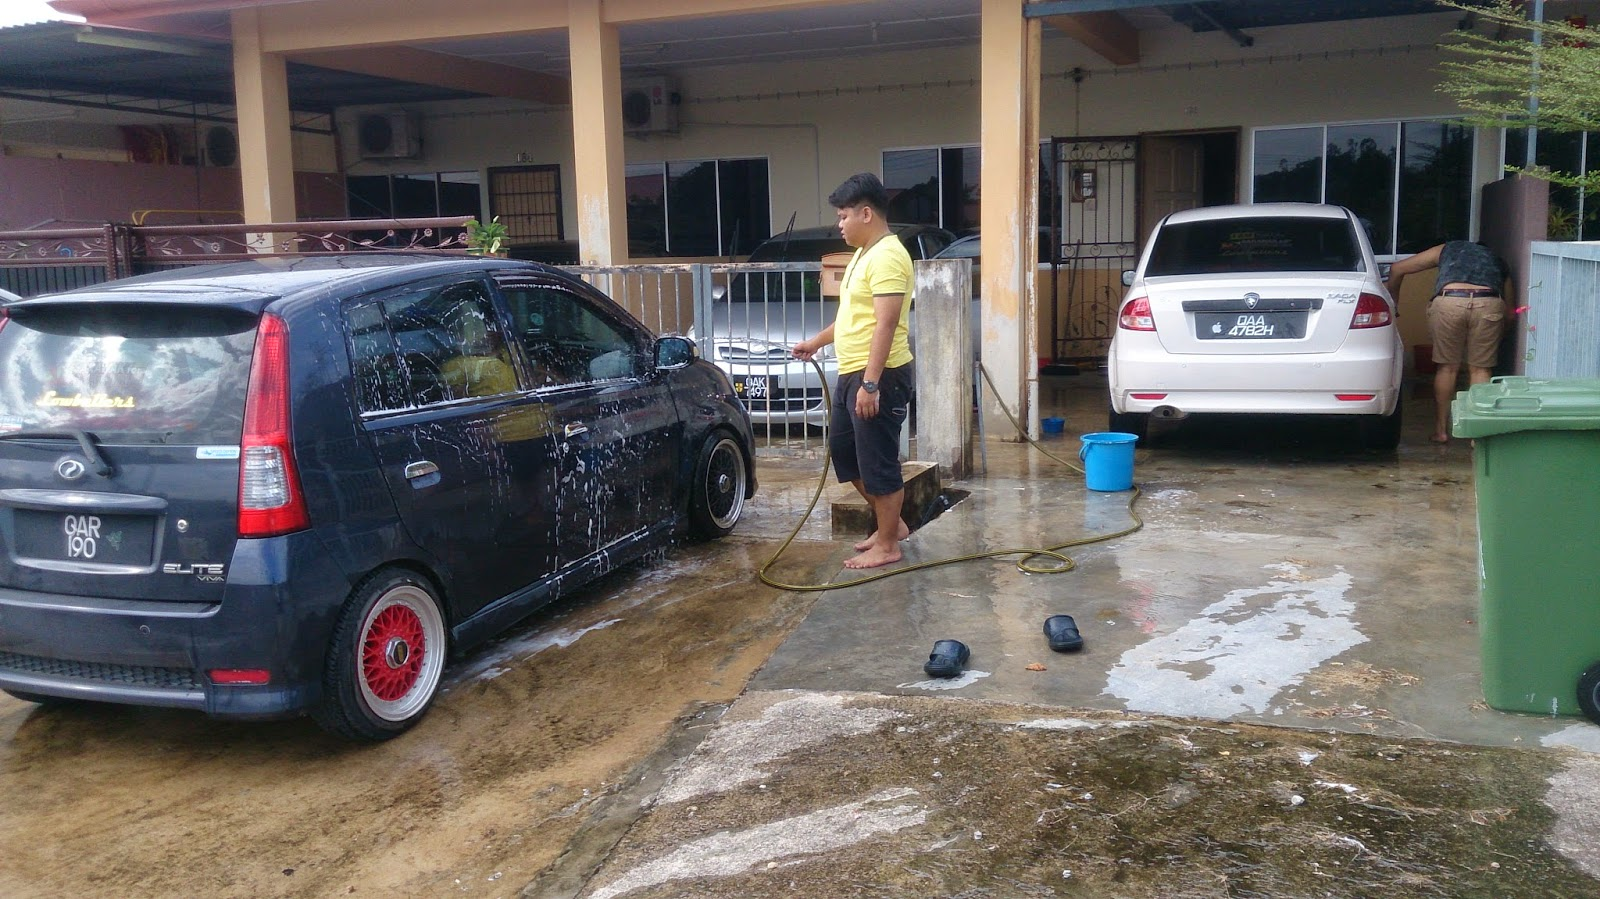 Car sticker design kuching - Gentleman Will Buy Grocery Things And Let The Girl Prepare The Bbq